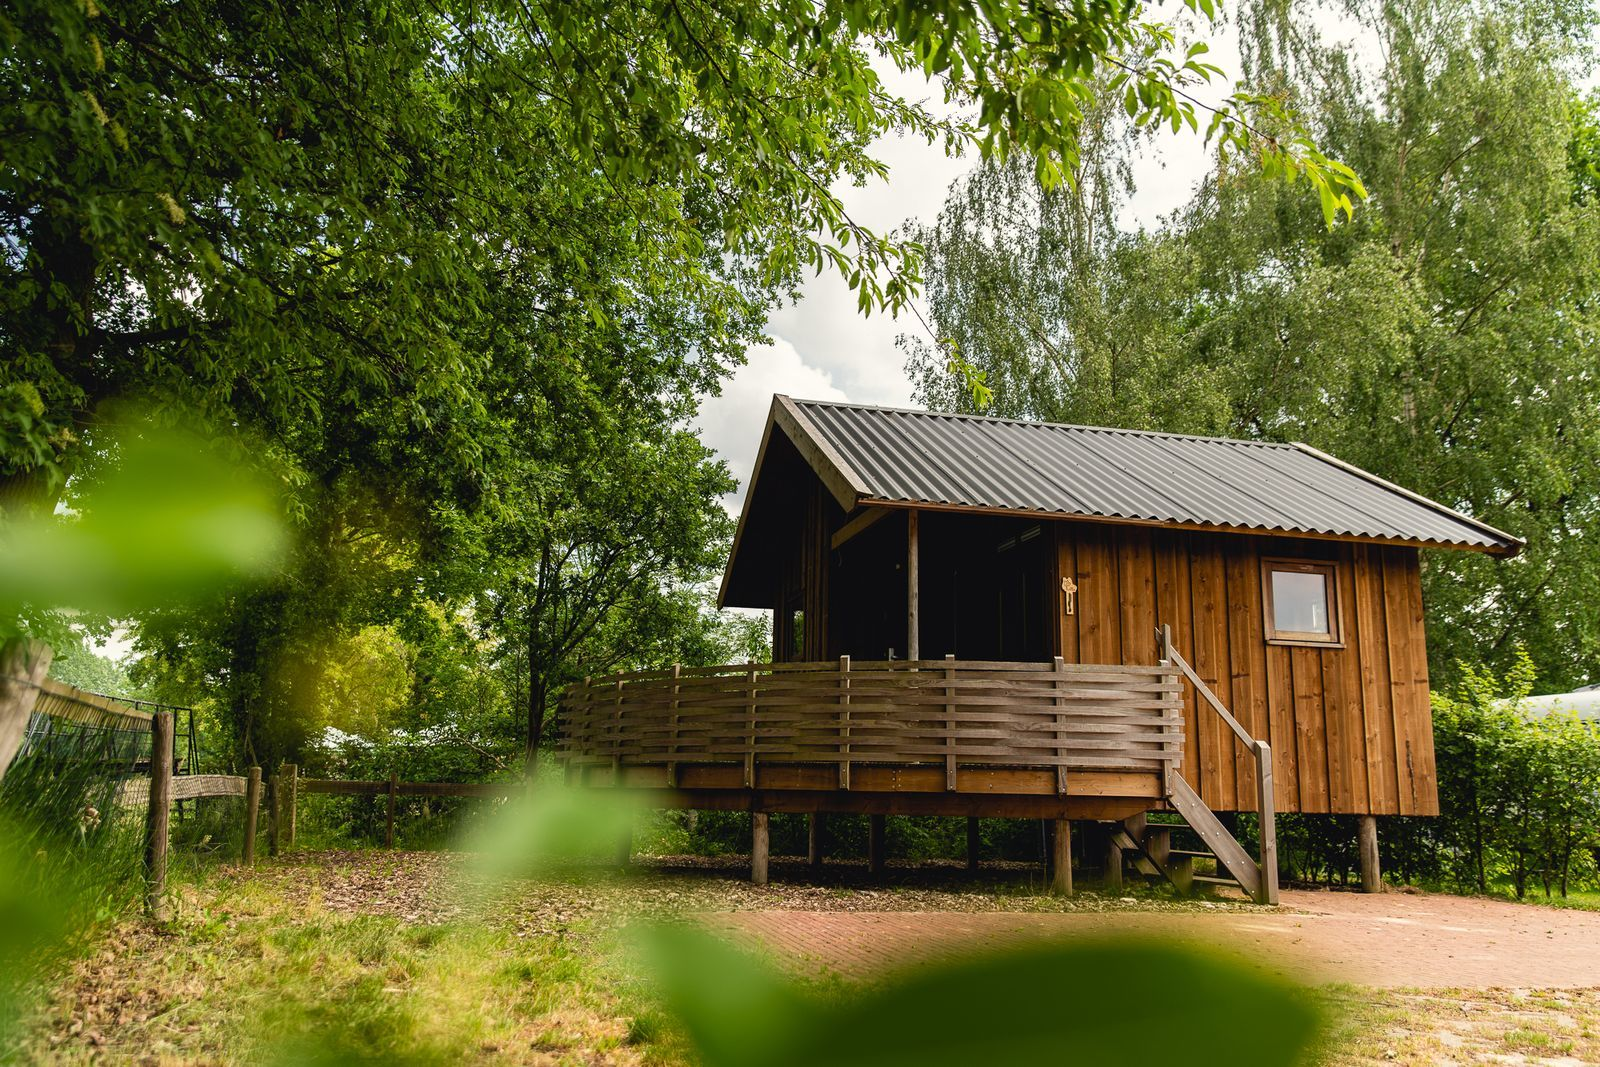 4-Personen-Glamping-Cottage